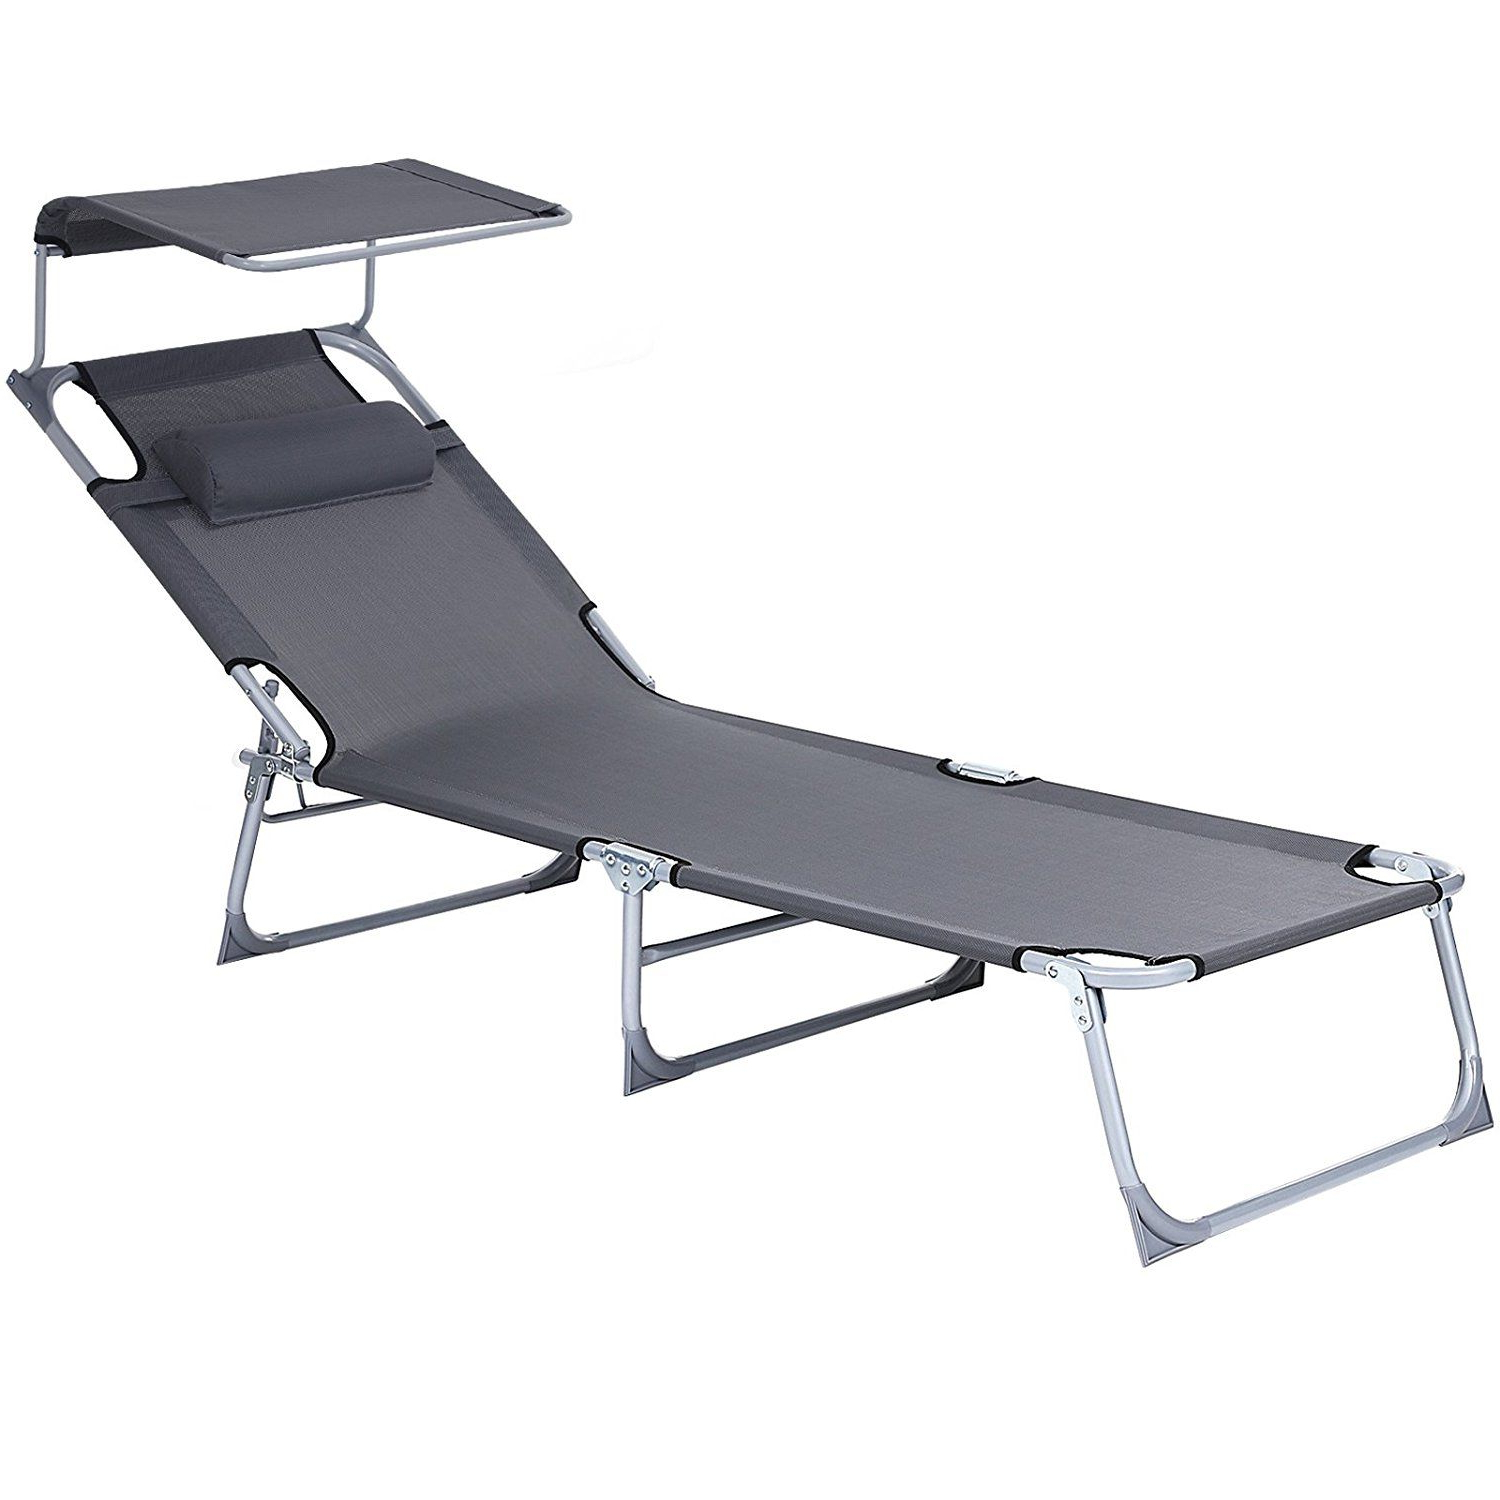 Songmics Sun Lounger Recliner Chair With Canopy And Regarding Recent Norrie Metal Garden Benches (View 27 of 30)